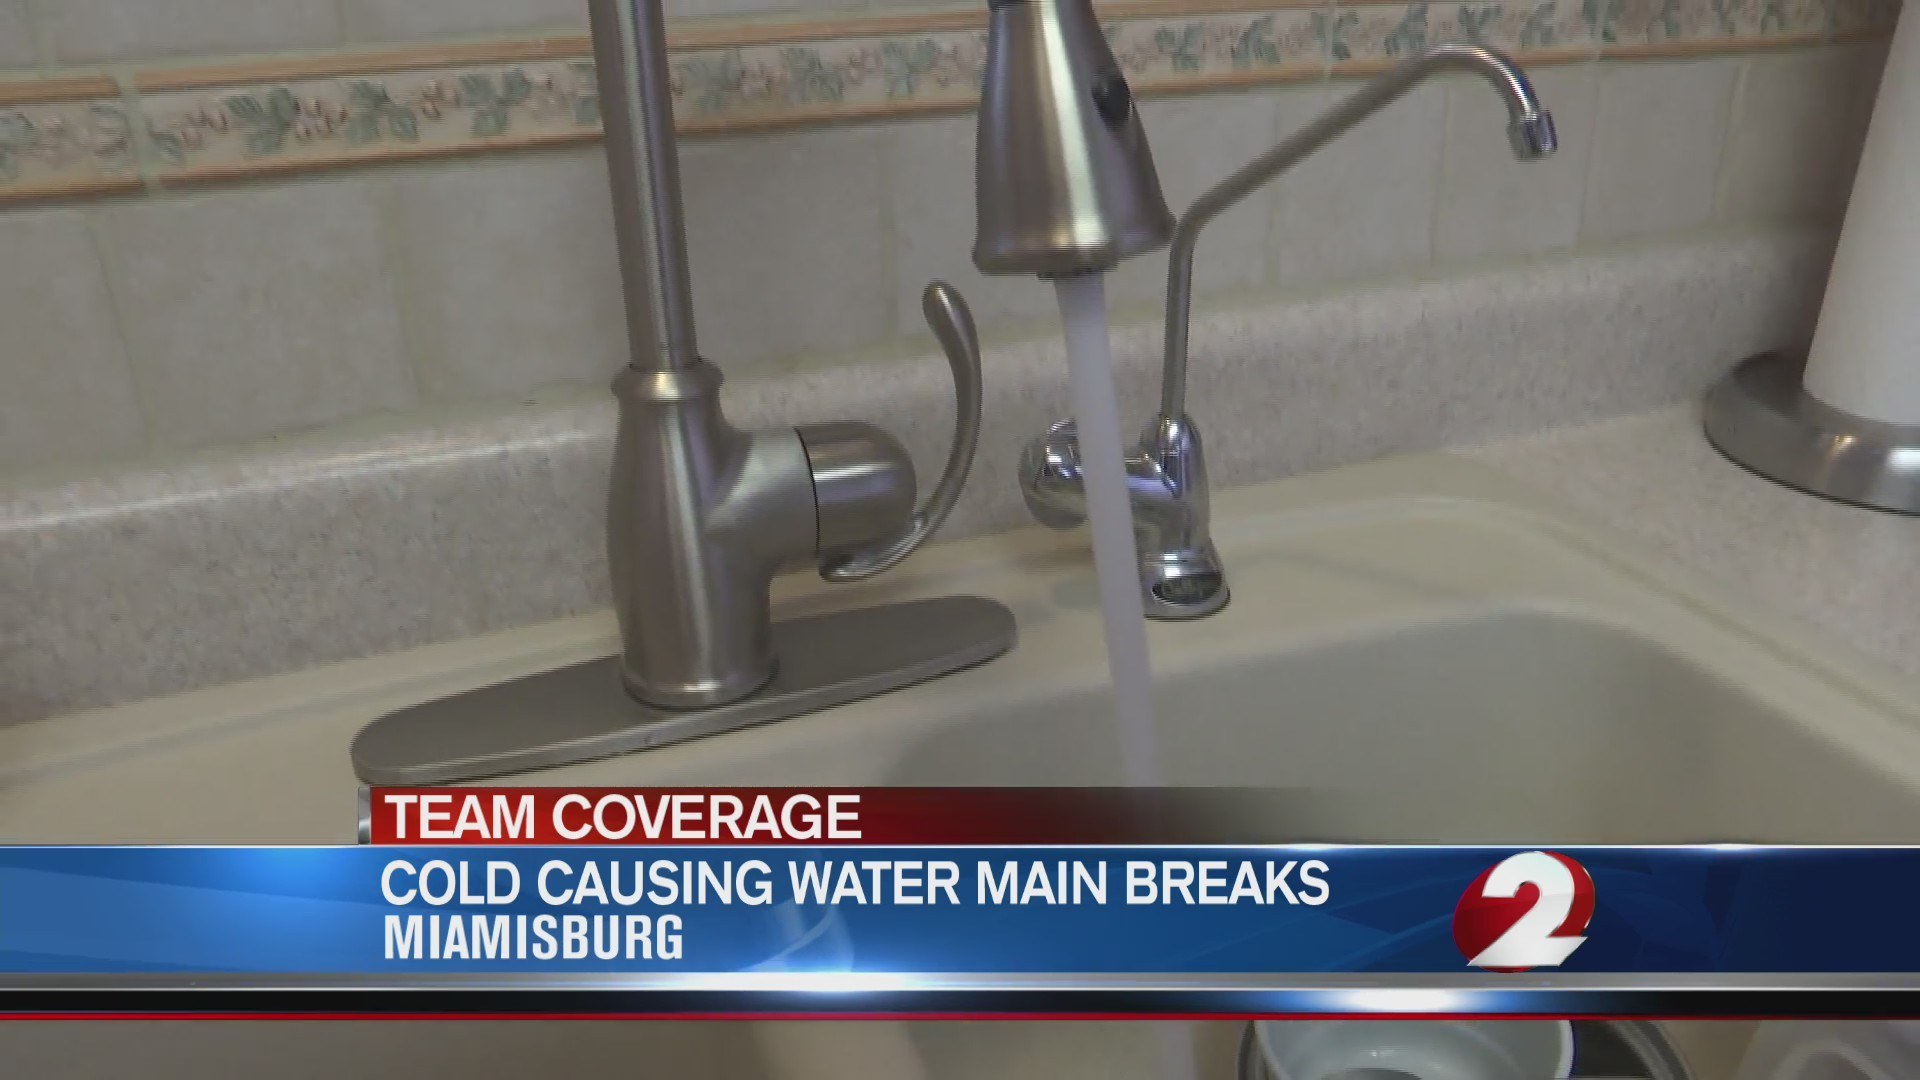 Cold causing water main breaks